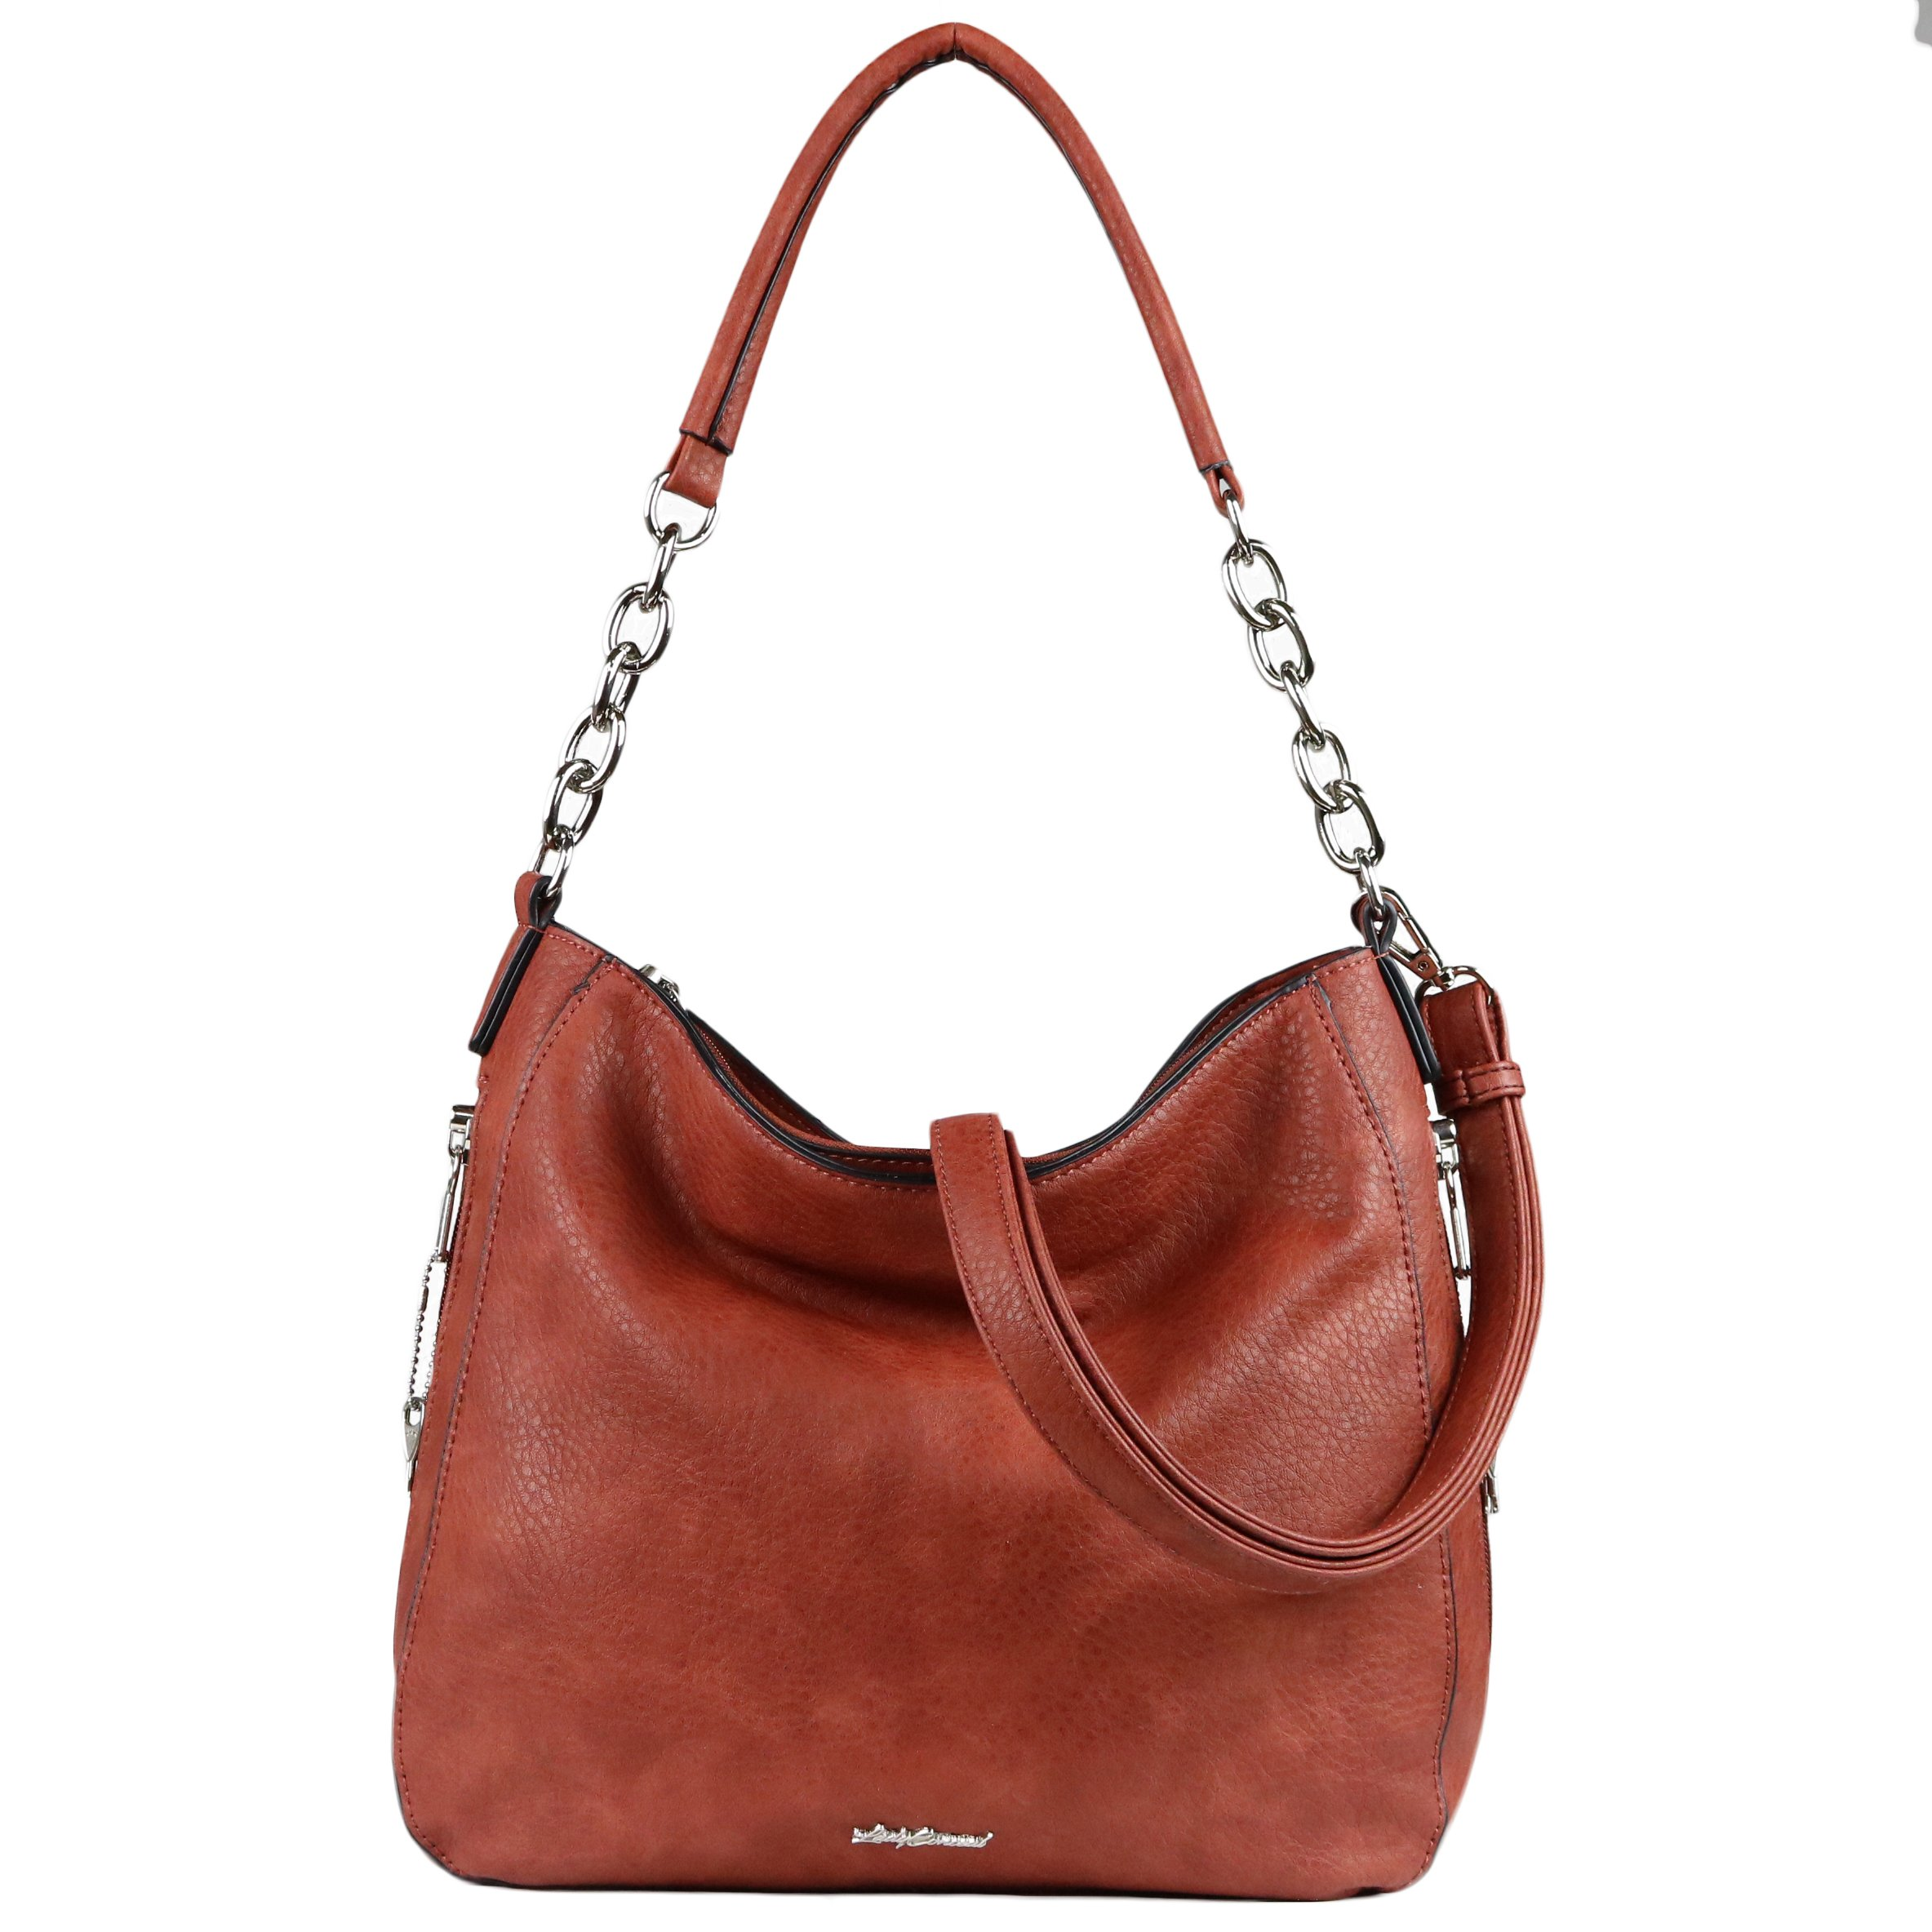 Concealed Carry Purse - YKK Locking Ashley Chain Concealed Carry Gun Hobo by Lady Conceal (Mahogany)